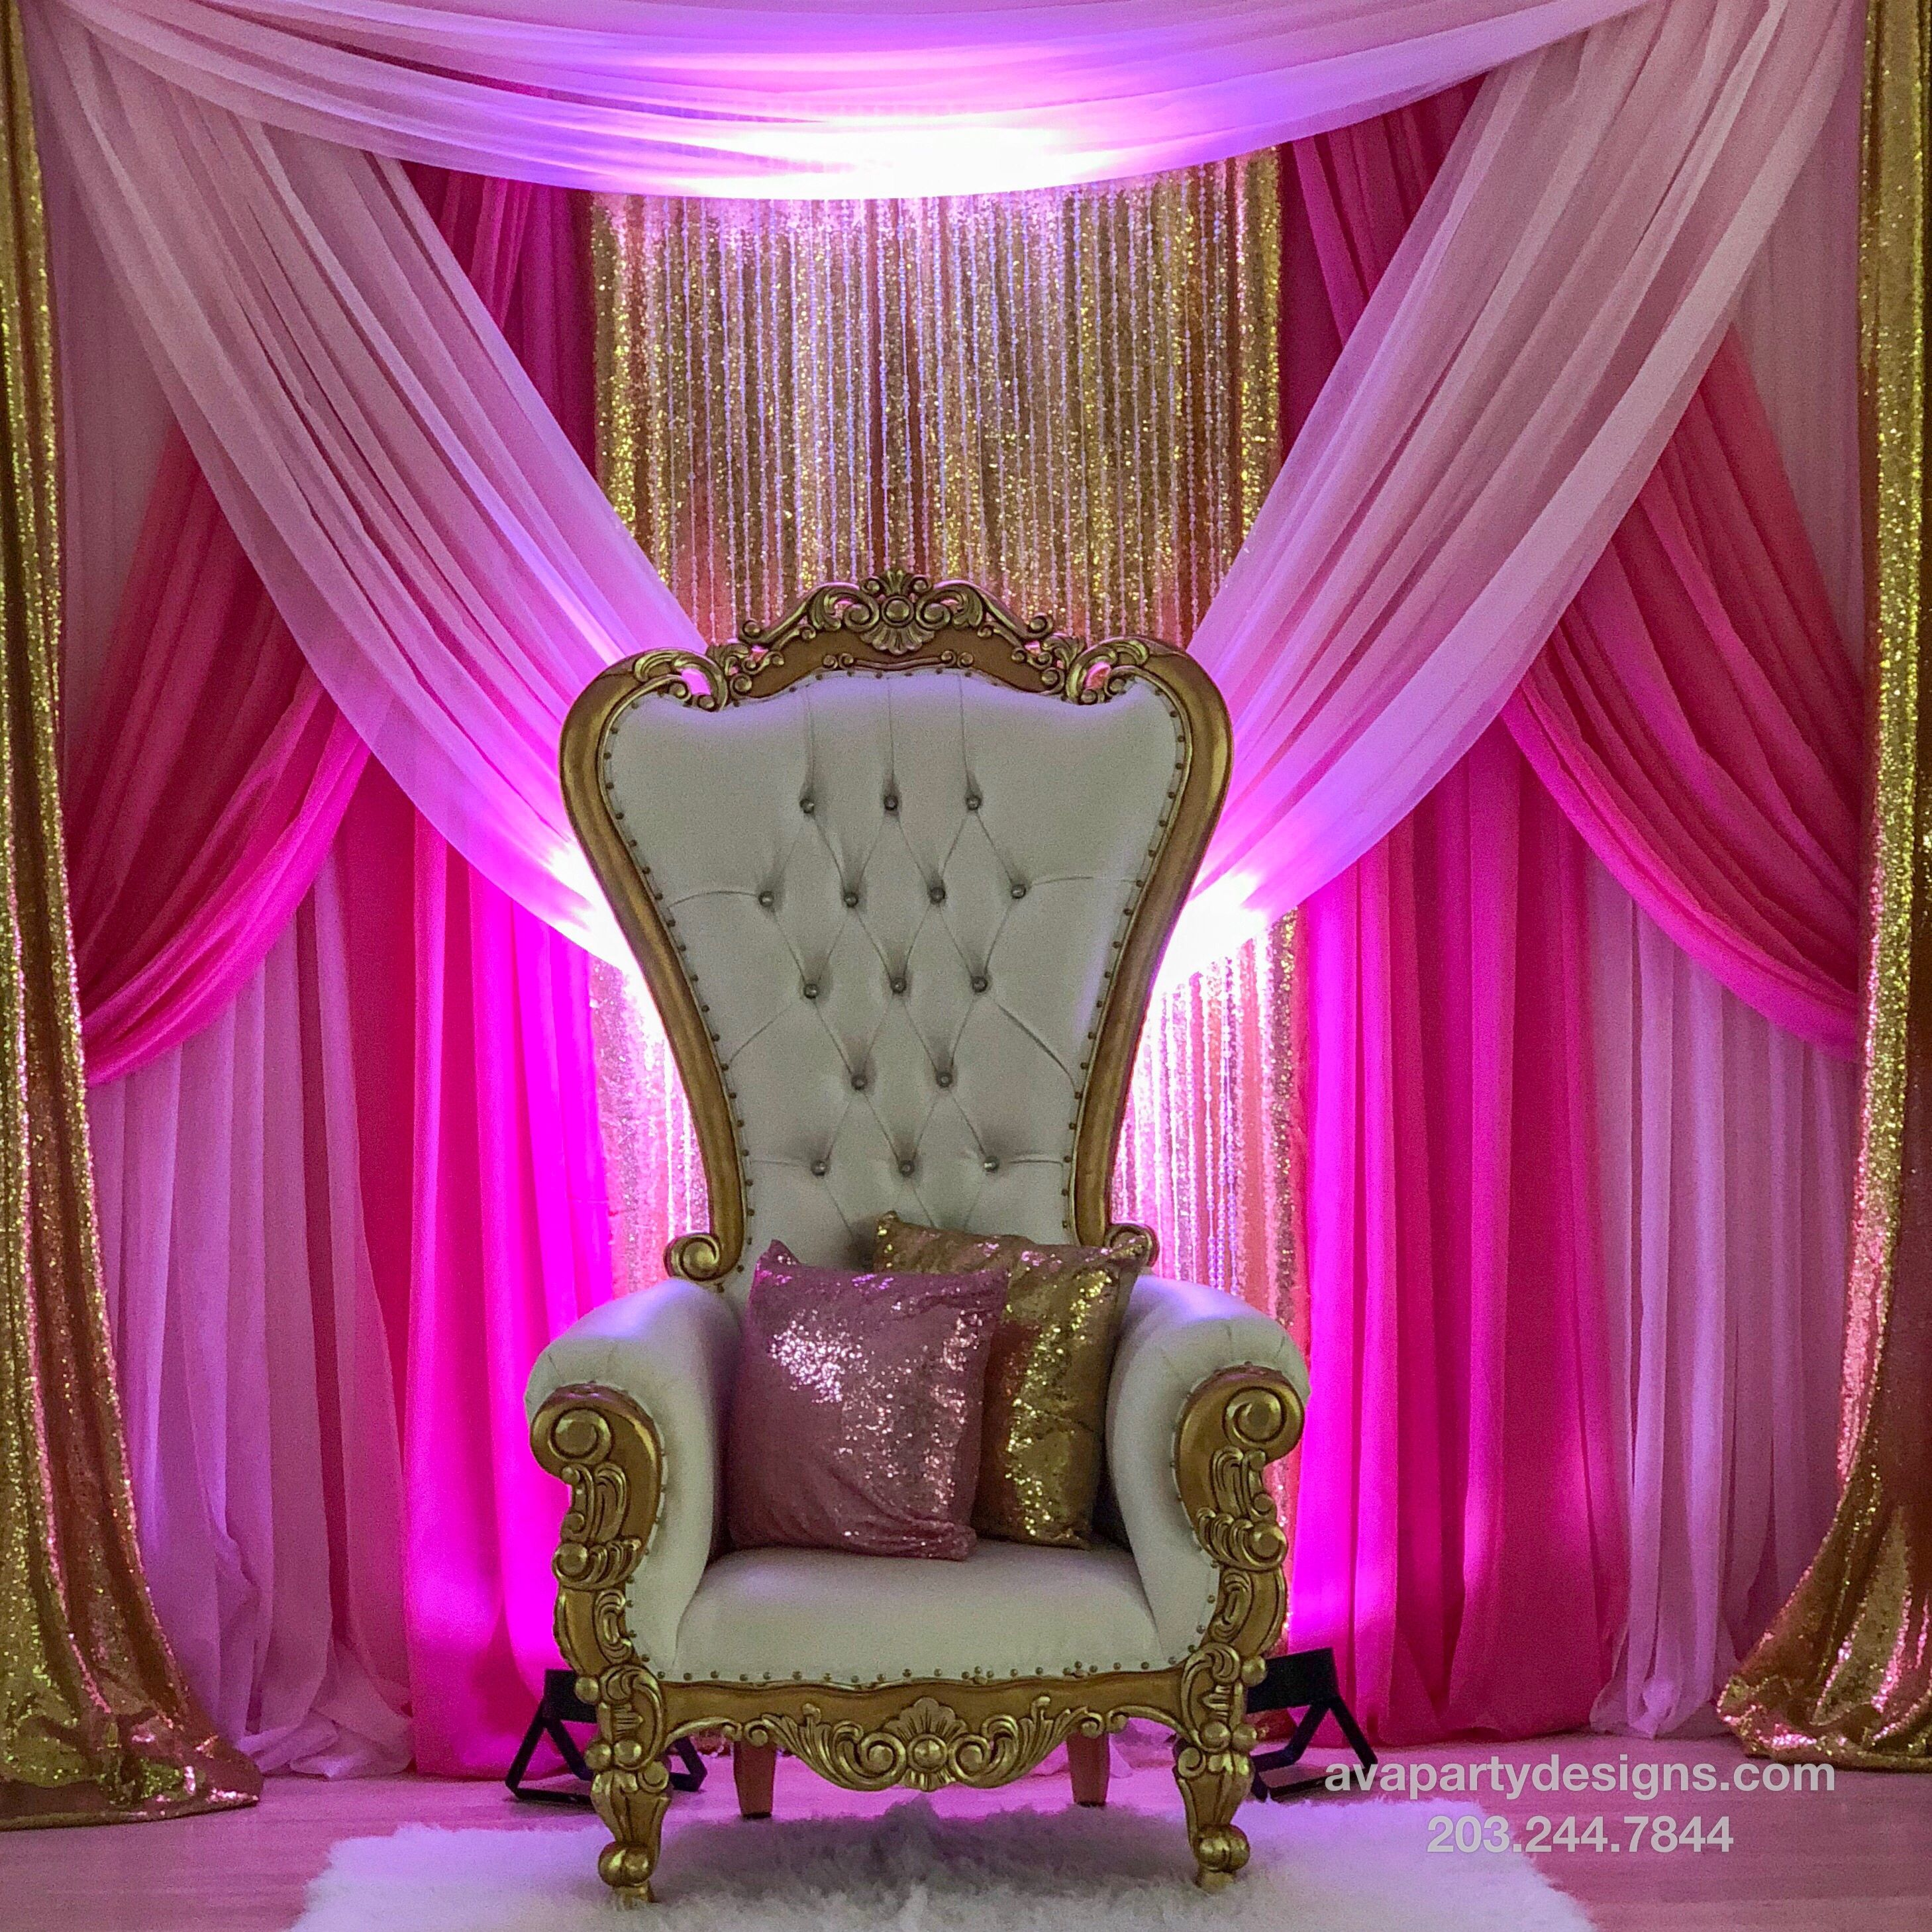 Party Rental Package 1a With Duchess Throne Chair Light Pink Hot Pink And Gold Premium Sweet 16 Party Decorations Pink Sweet 16 Pink And Gold Birthday Party